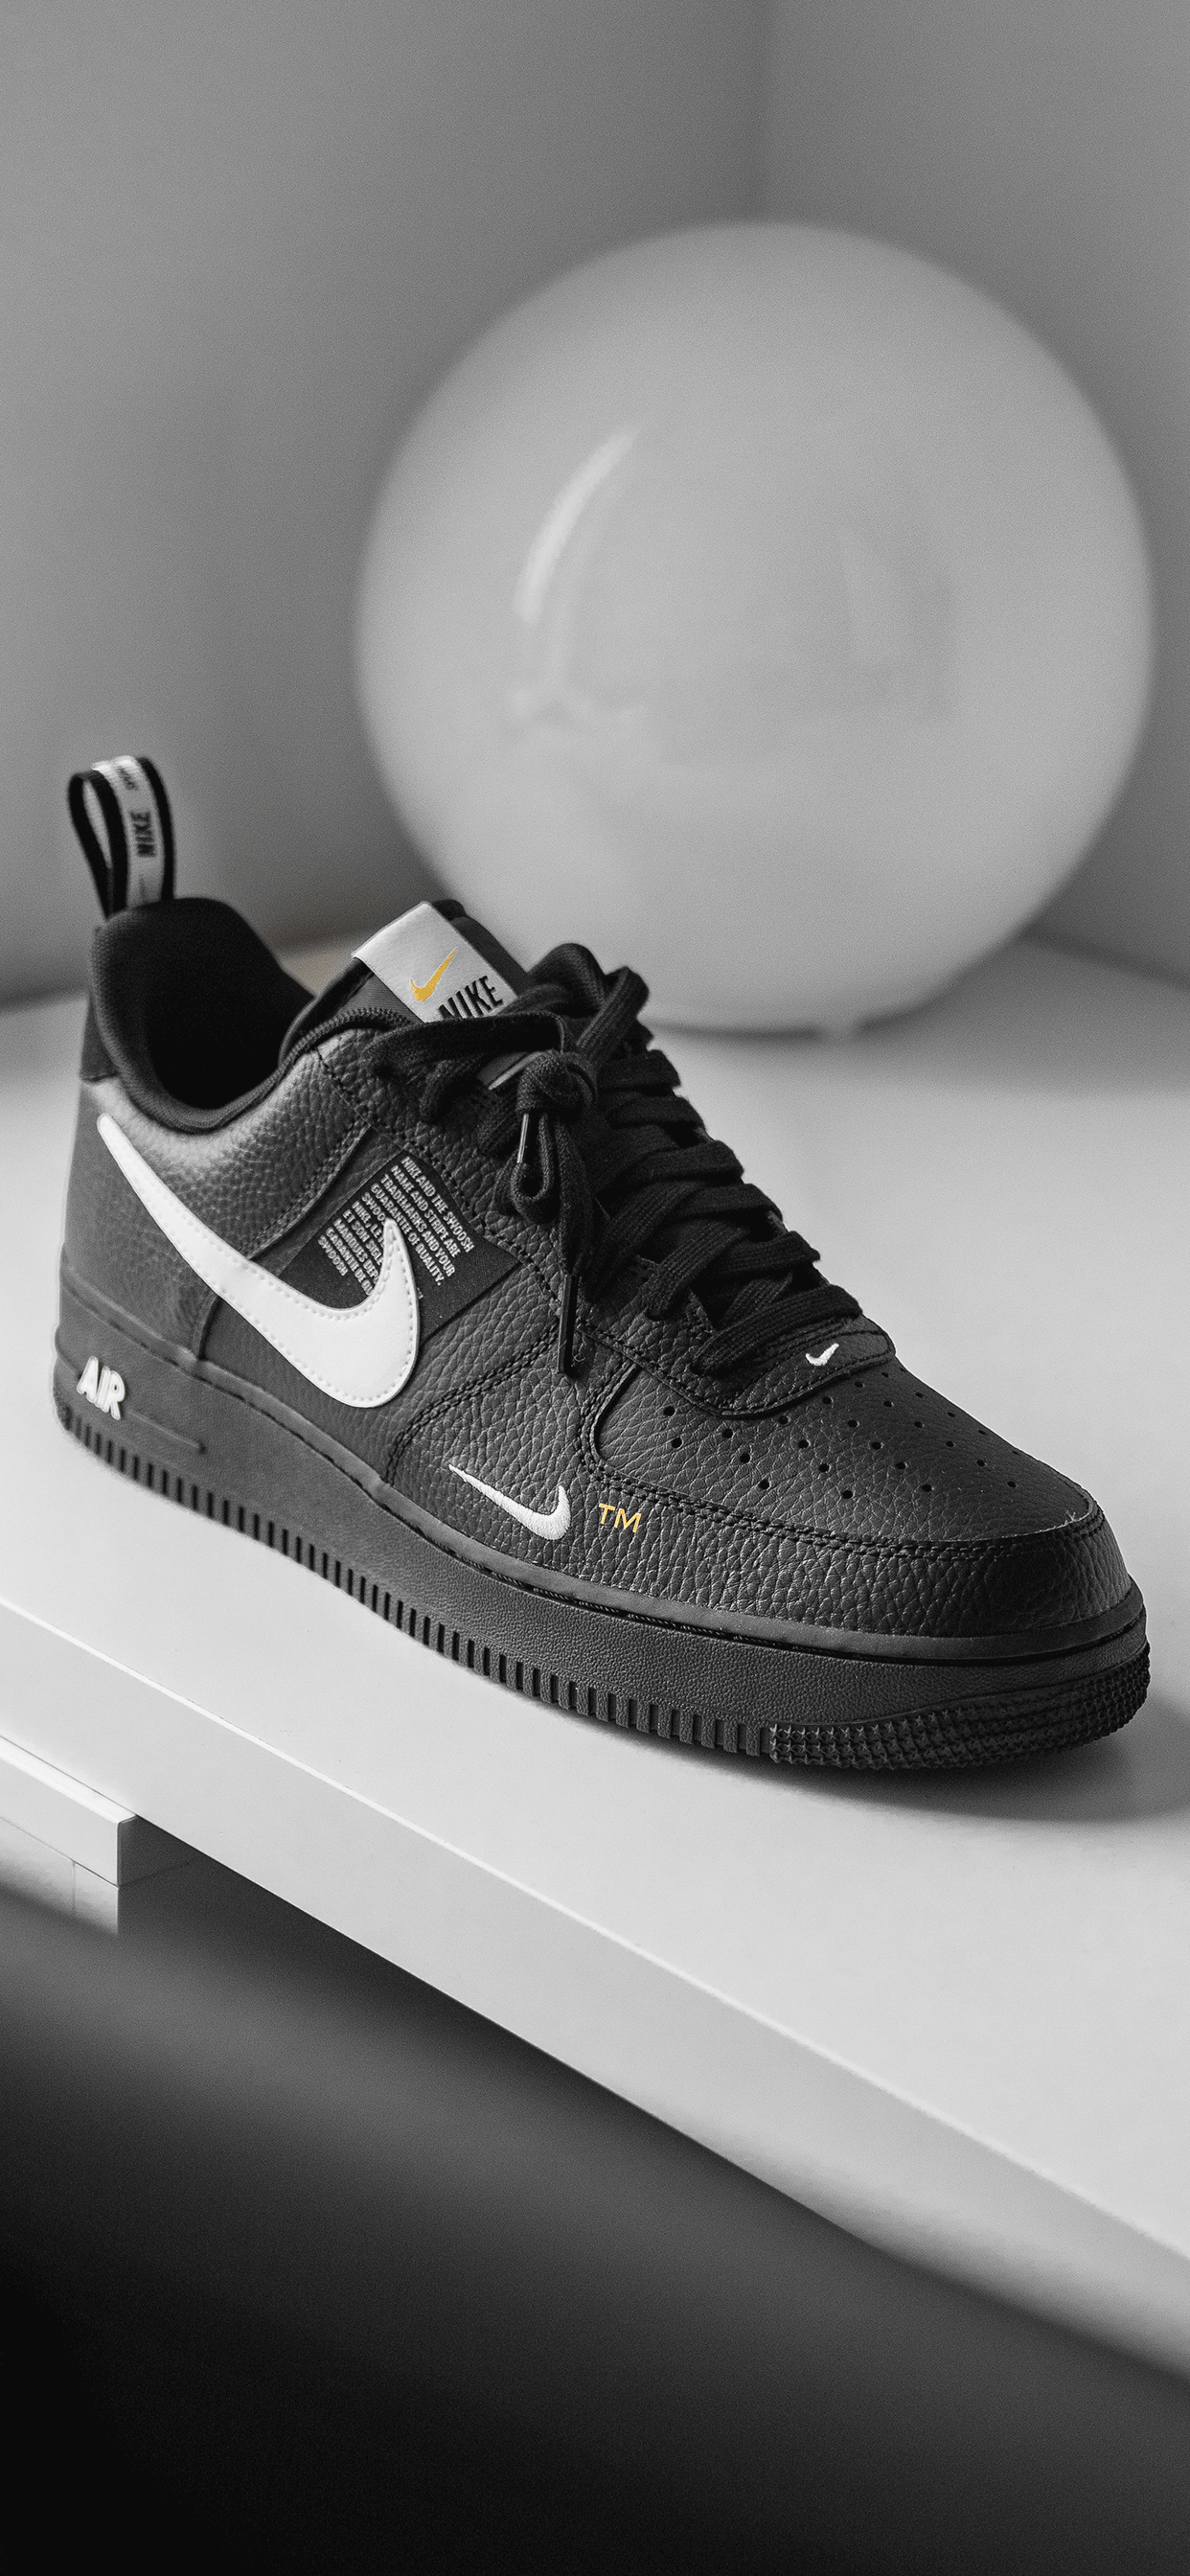 meilleur authentique 09bdd cb9a2 Nike Air Force 1 Wallpaper for iPhone X, 8, 7, 6 - Free ...